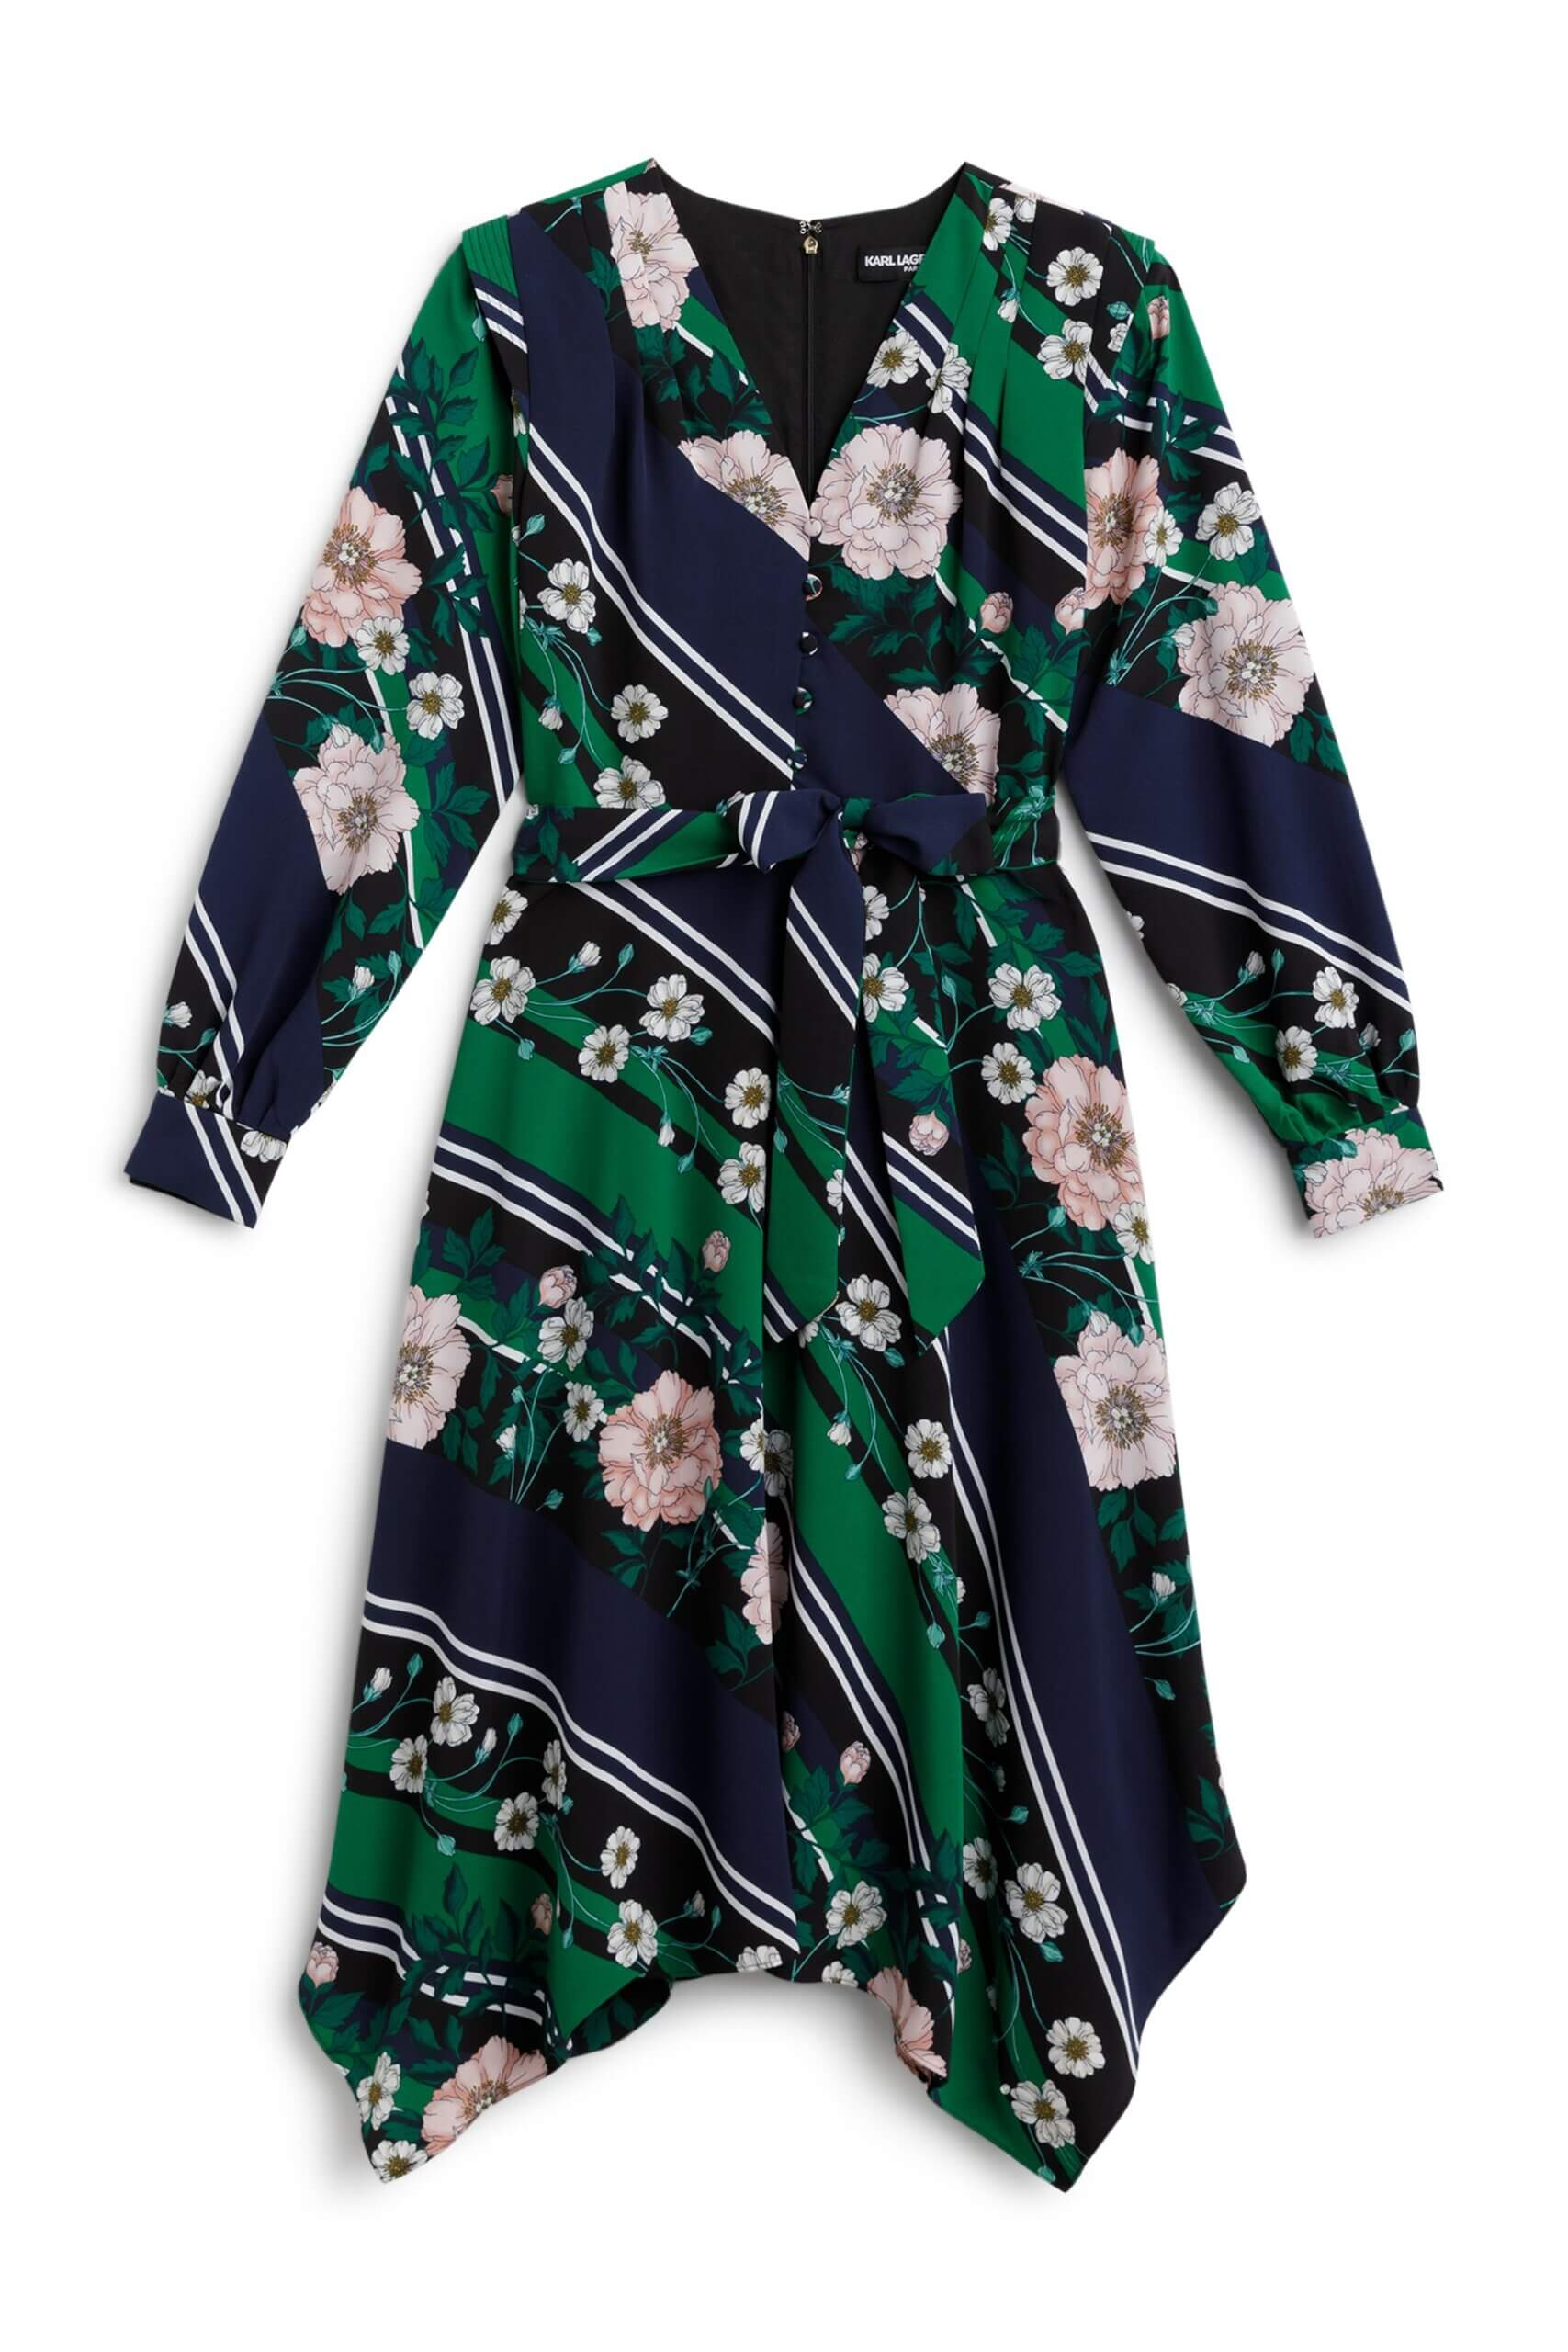 Stitch Fix Women's navy tie-waist dress with floral pattern and green stripes. .